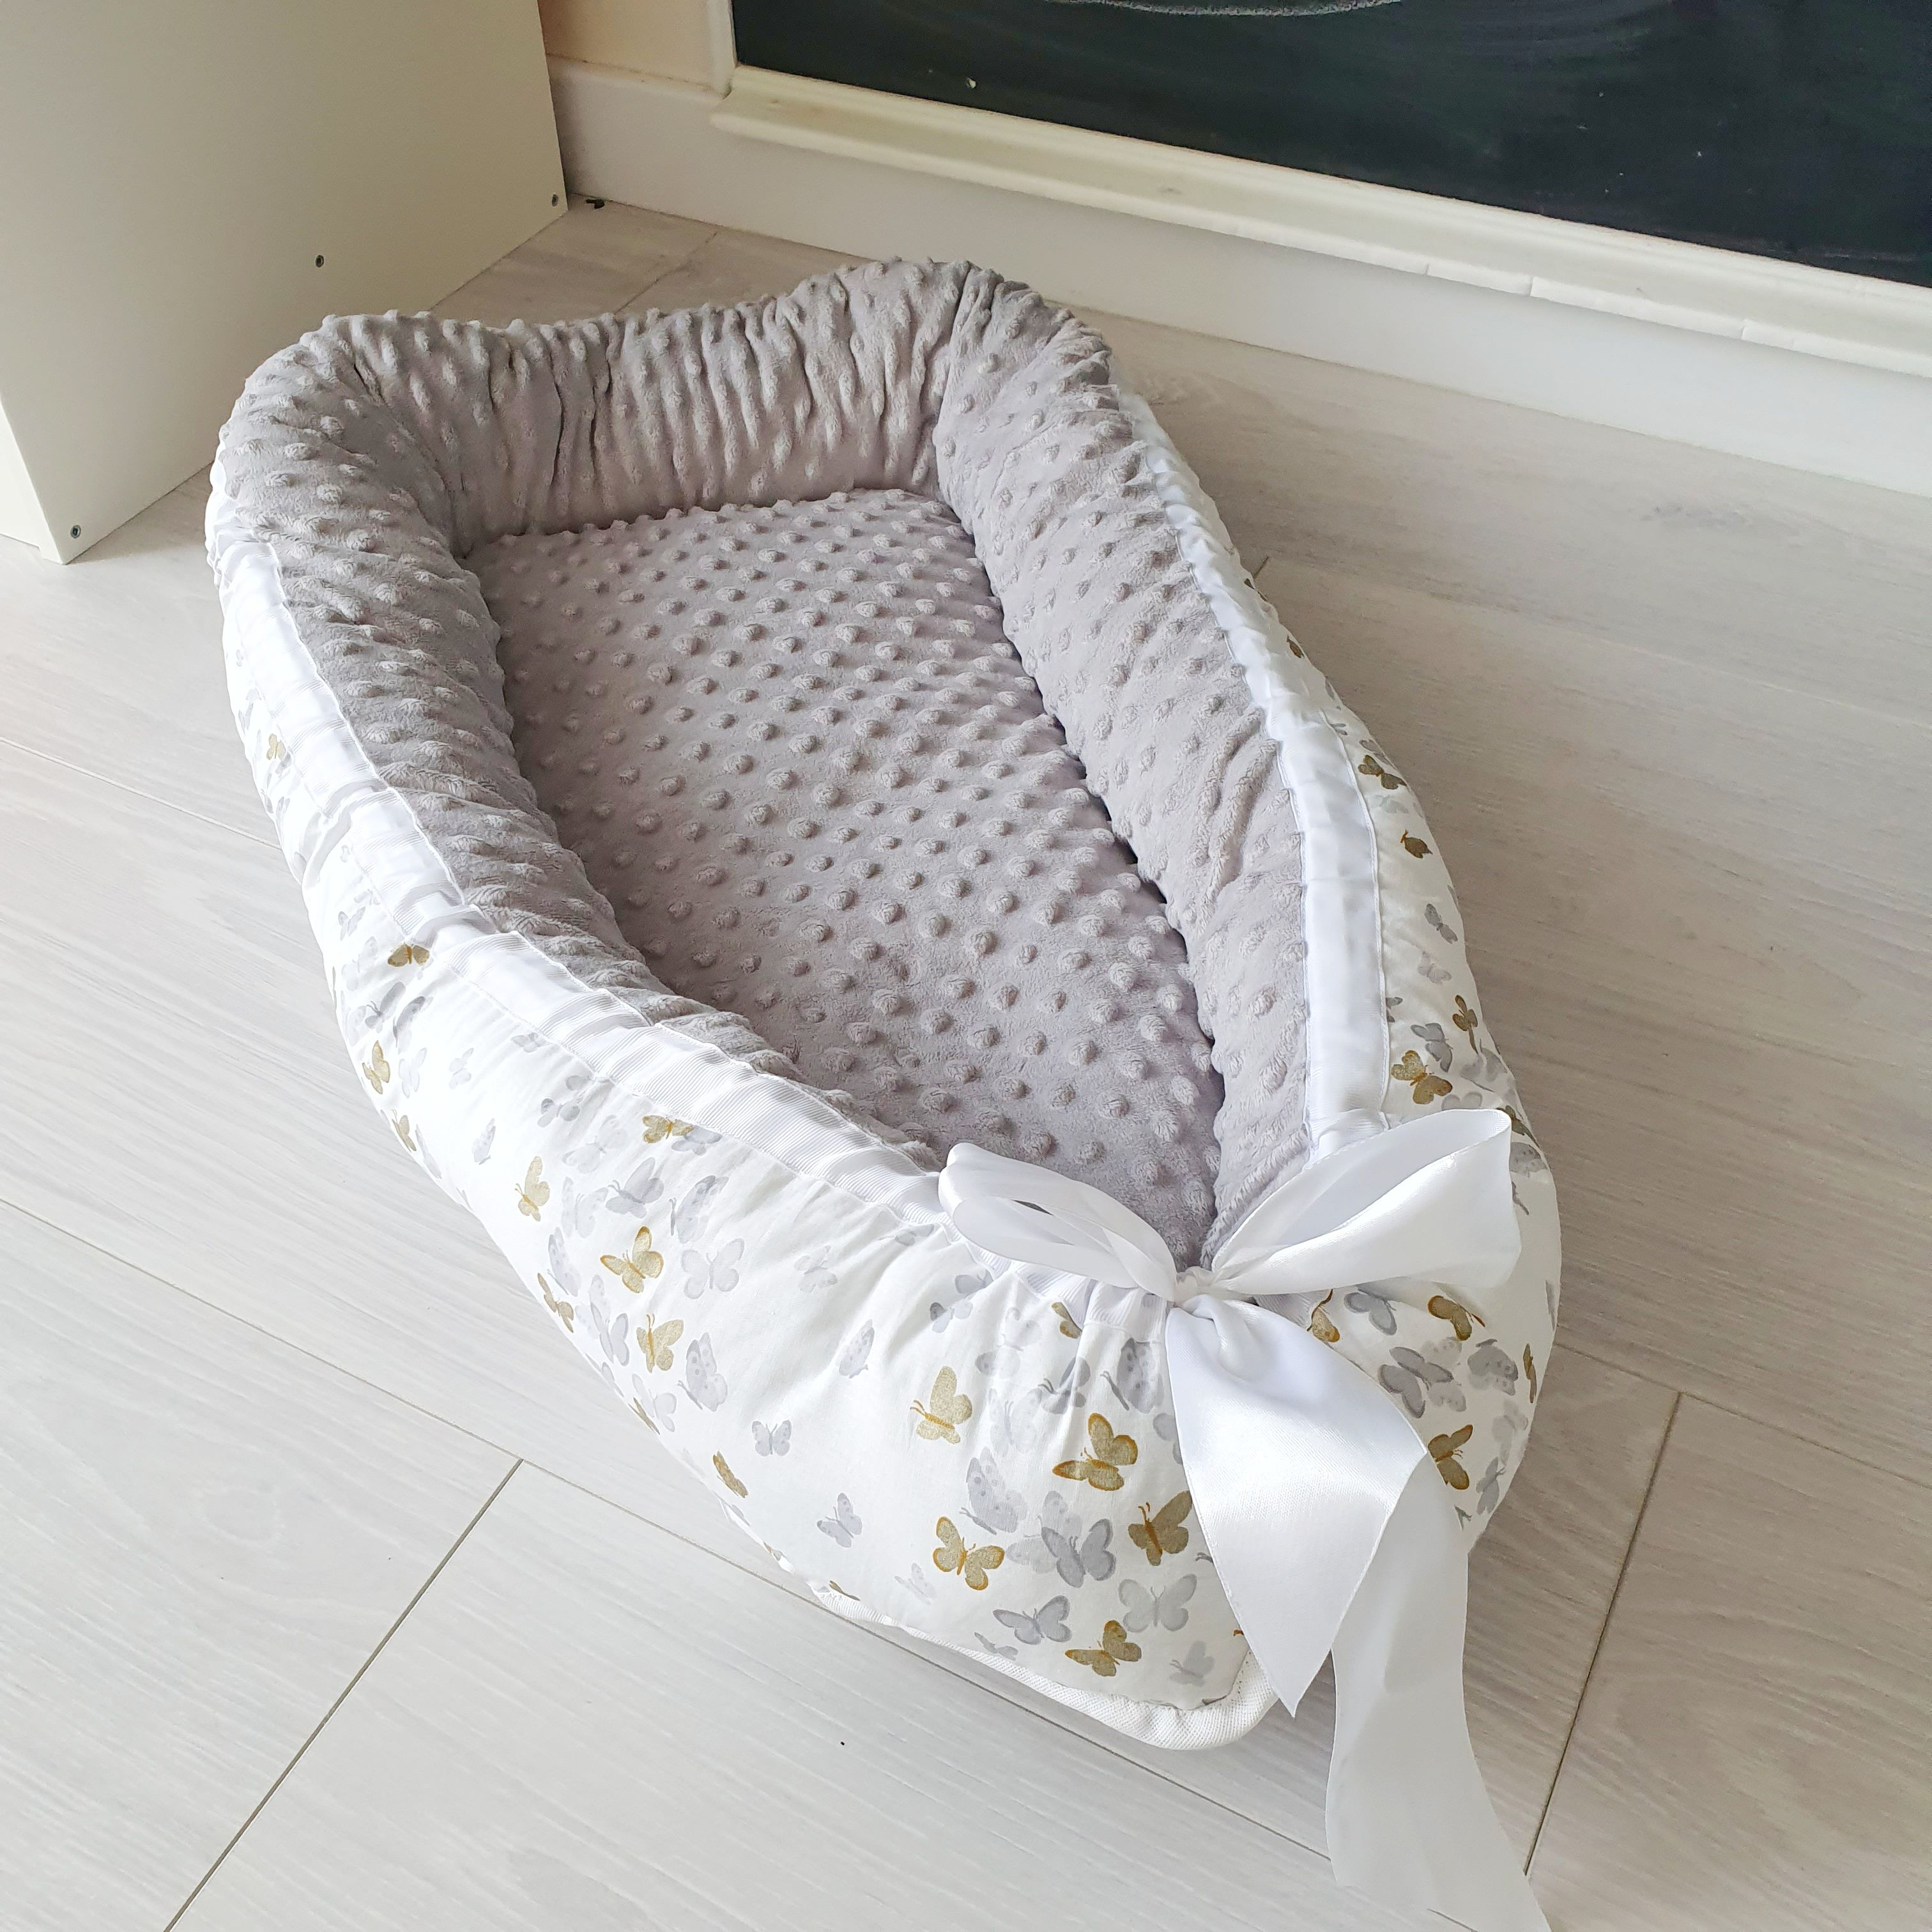 Babynest Baby Nest Baby Cocoon Baby Nest Bed Baby Shower Gift